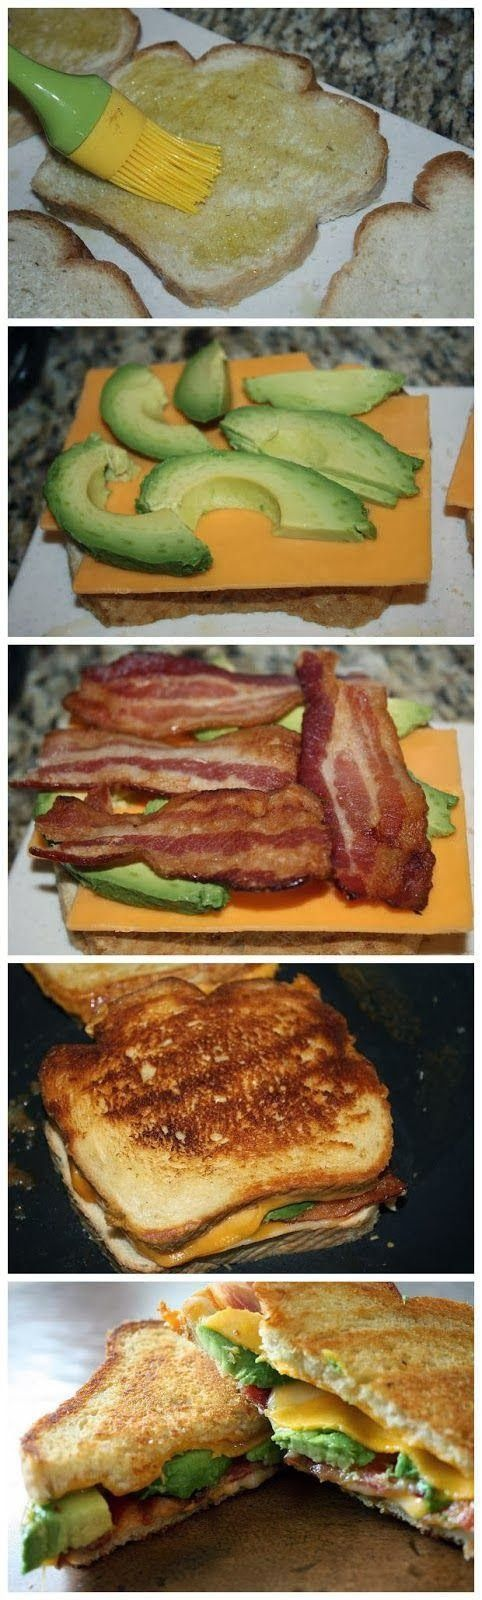 Yummy Recipes: Bacon Avocado Grilled Cheese recipe. This is happening this weekend for my husband.